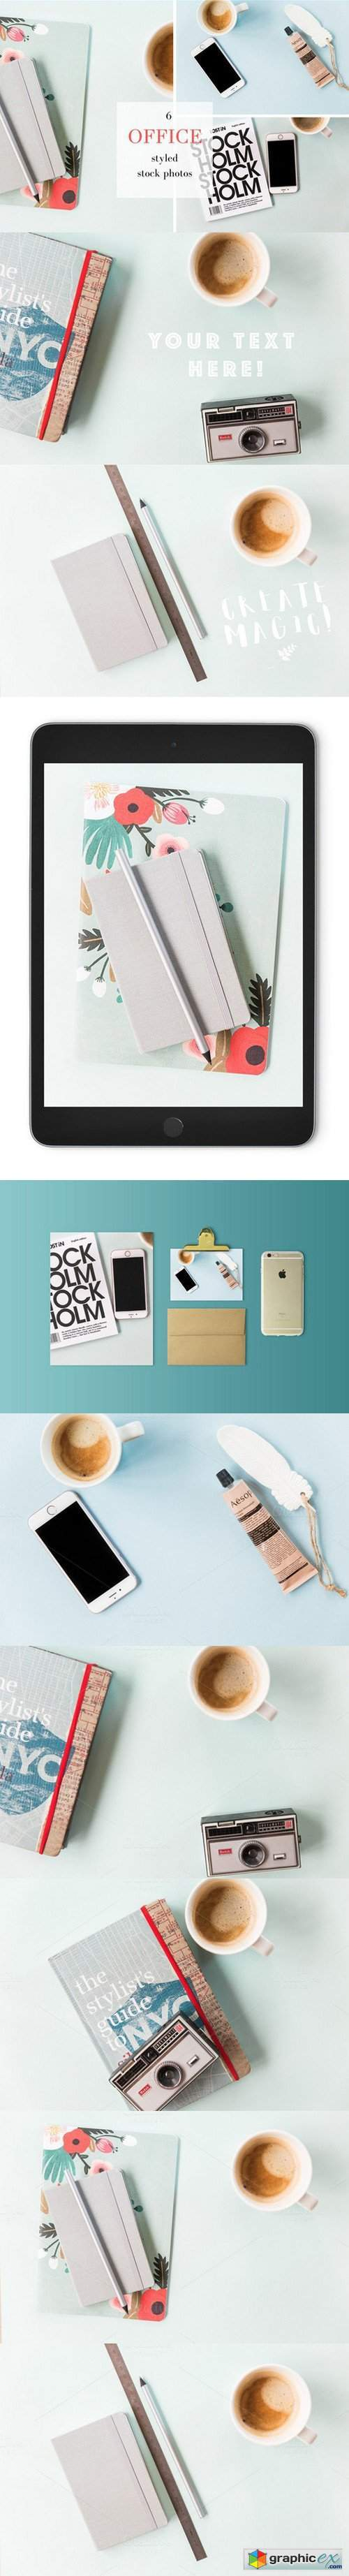 Office styled stock photos - 6